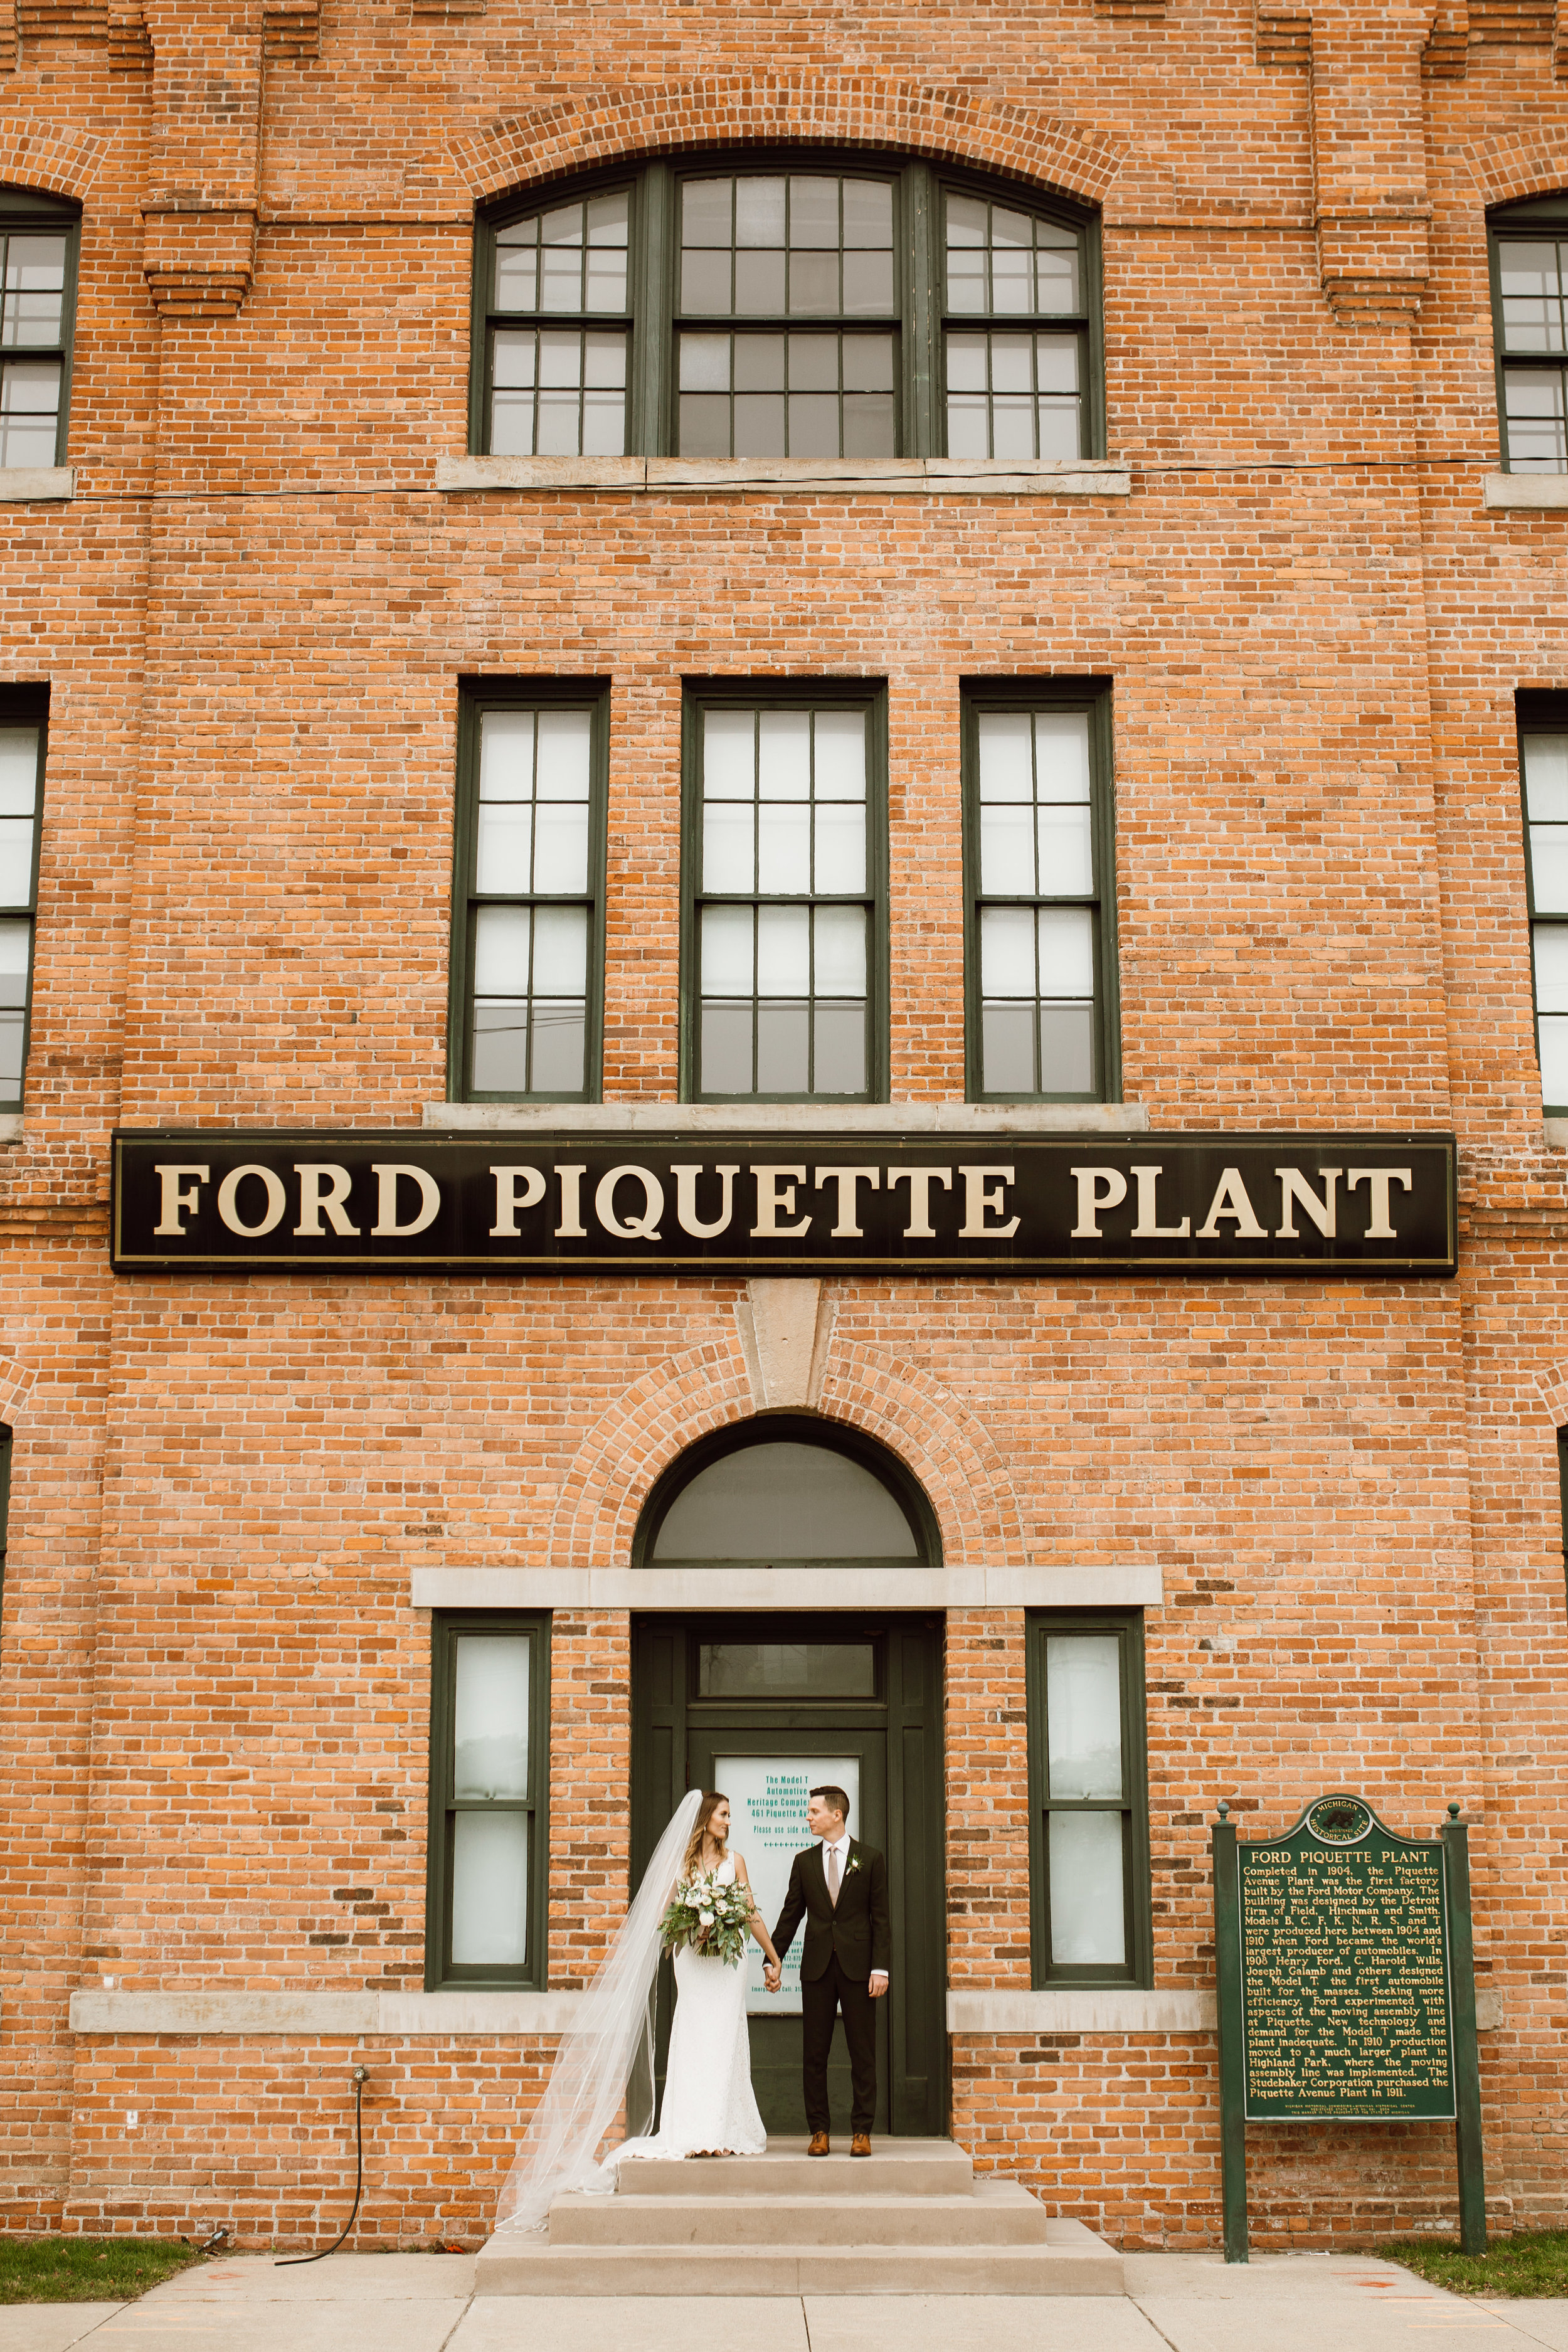 Katie_Vonasek_Photography_Ford_Piquette_Plant_Wedding_Detroit49.JPG